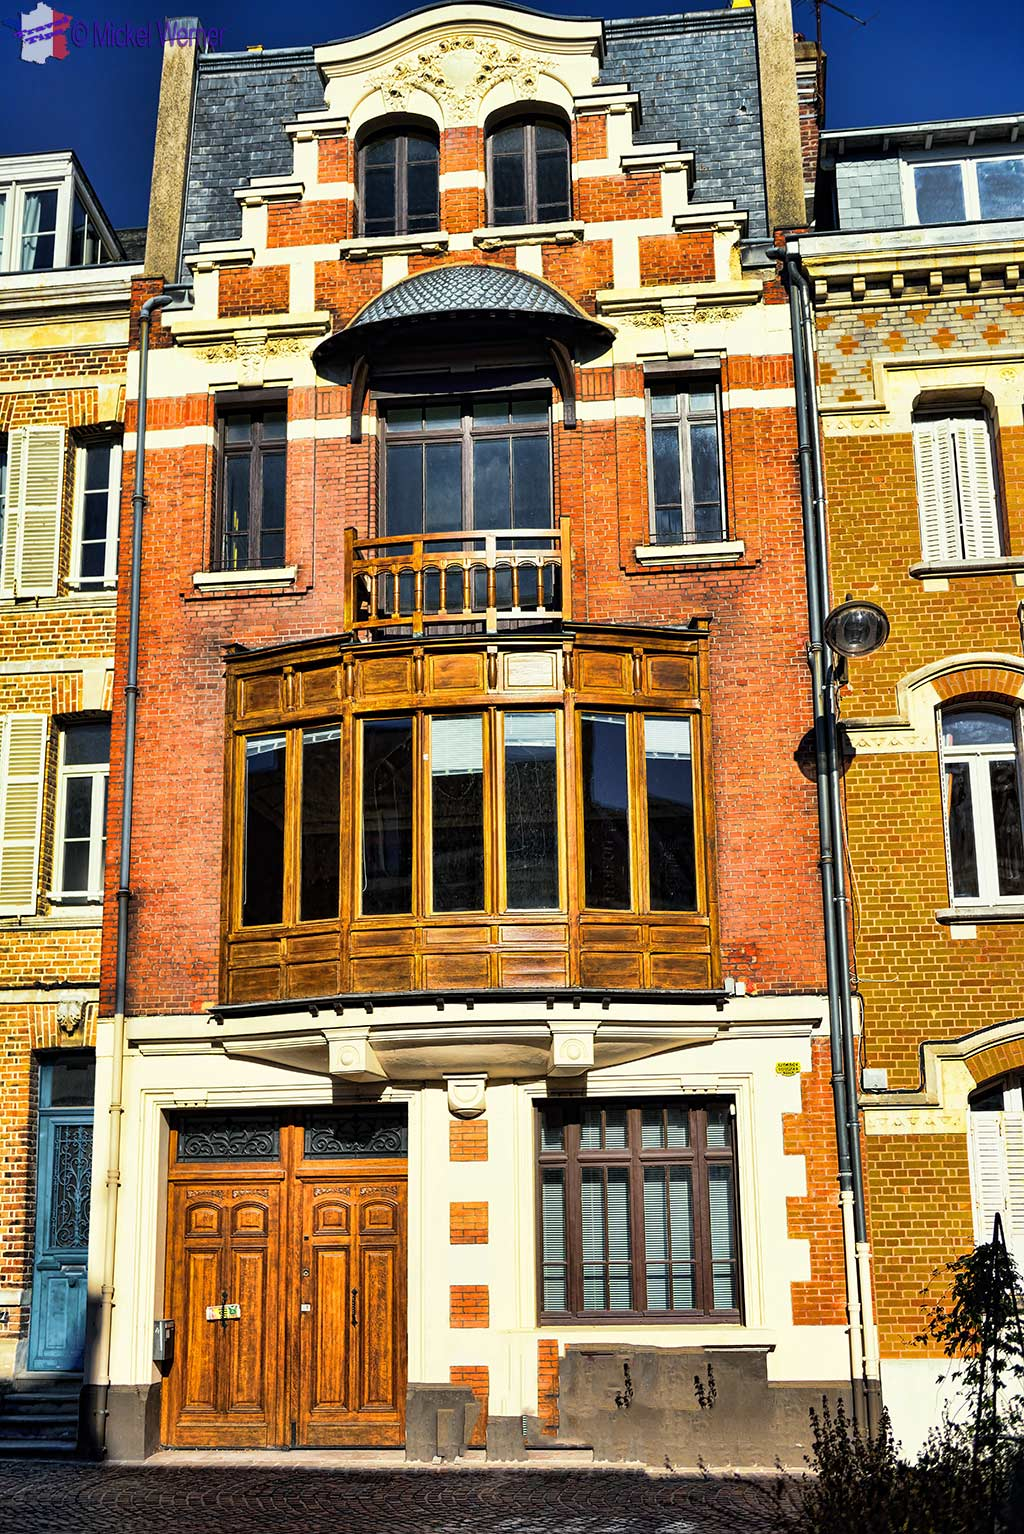 A house in Amiens